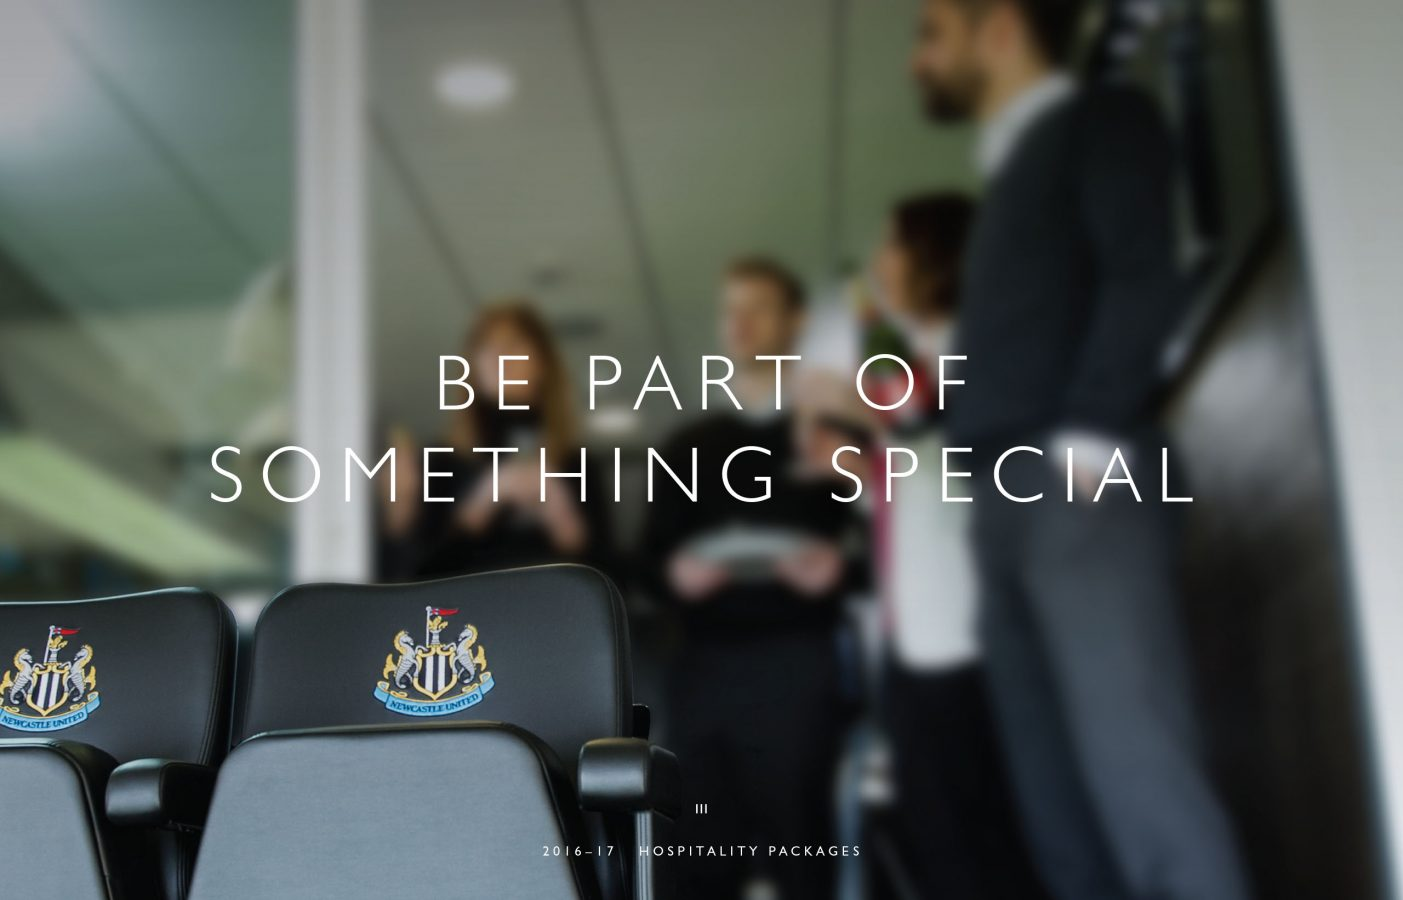 Event and hospitality brochure for Newcastle United FC